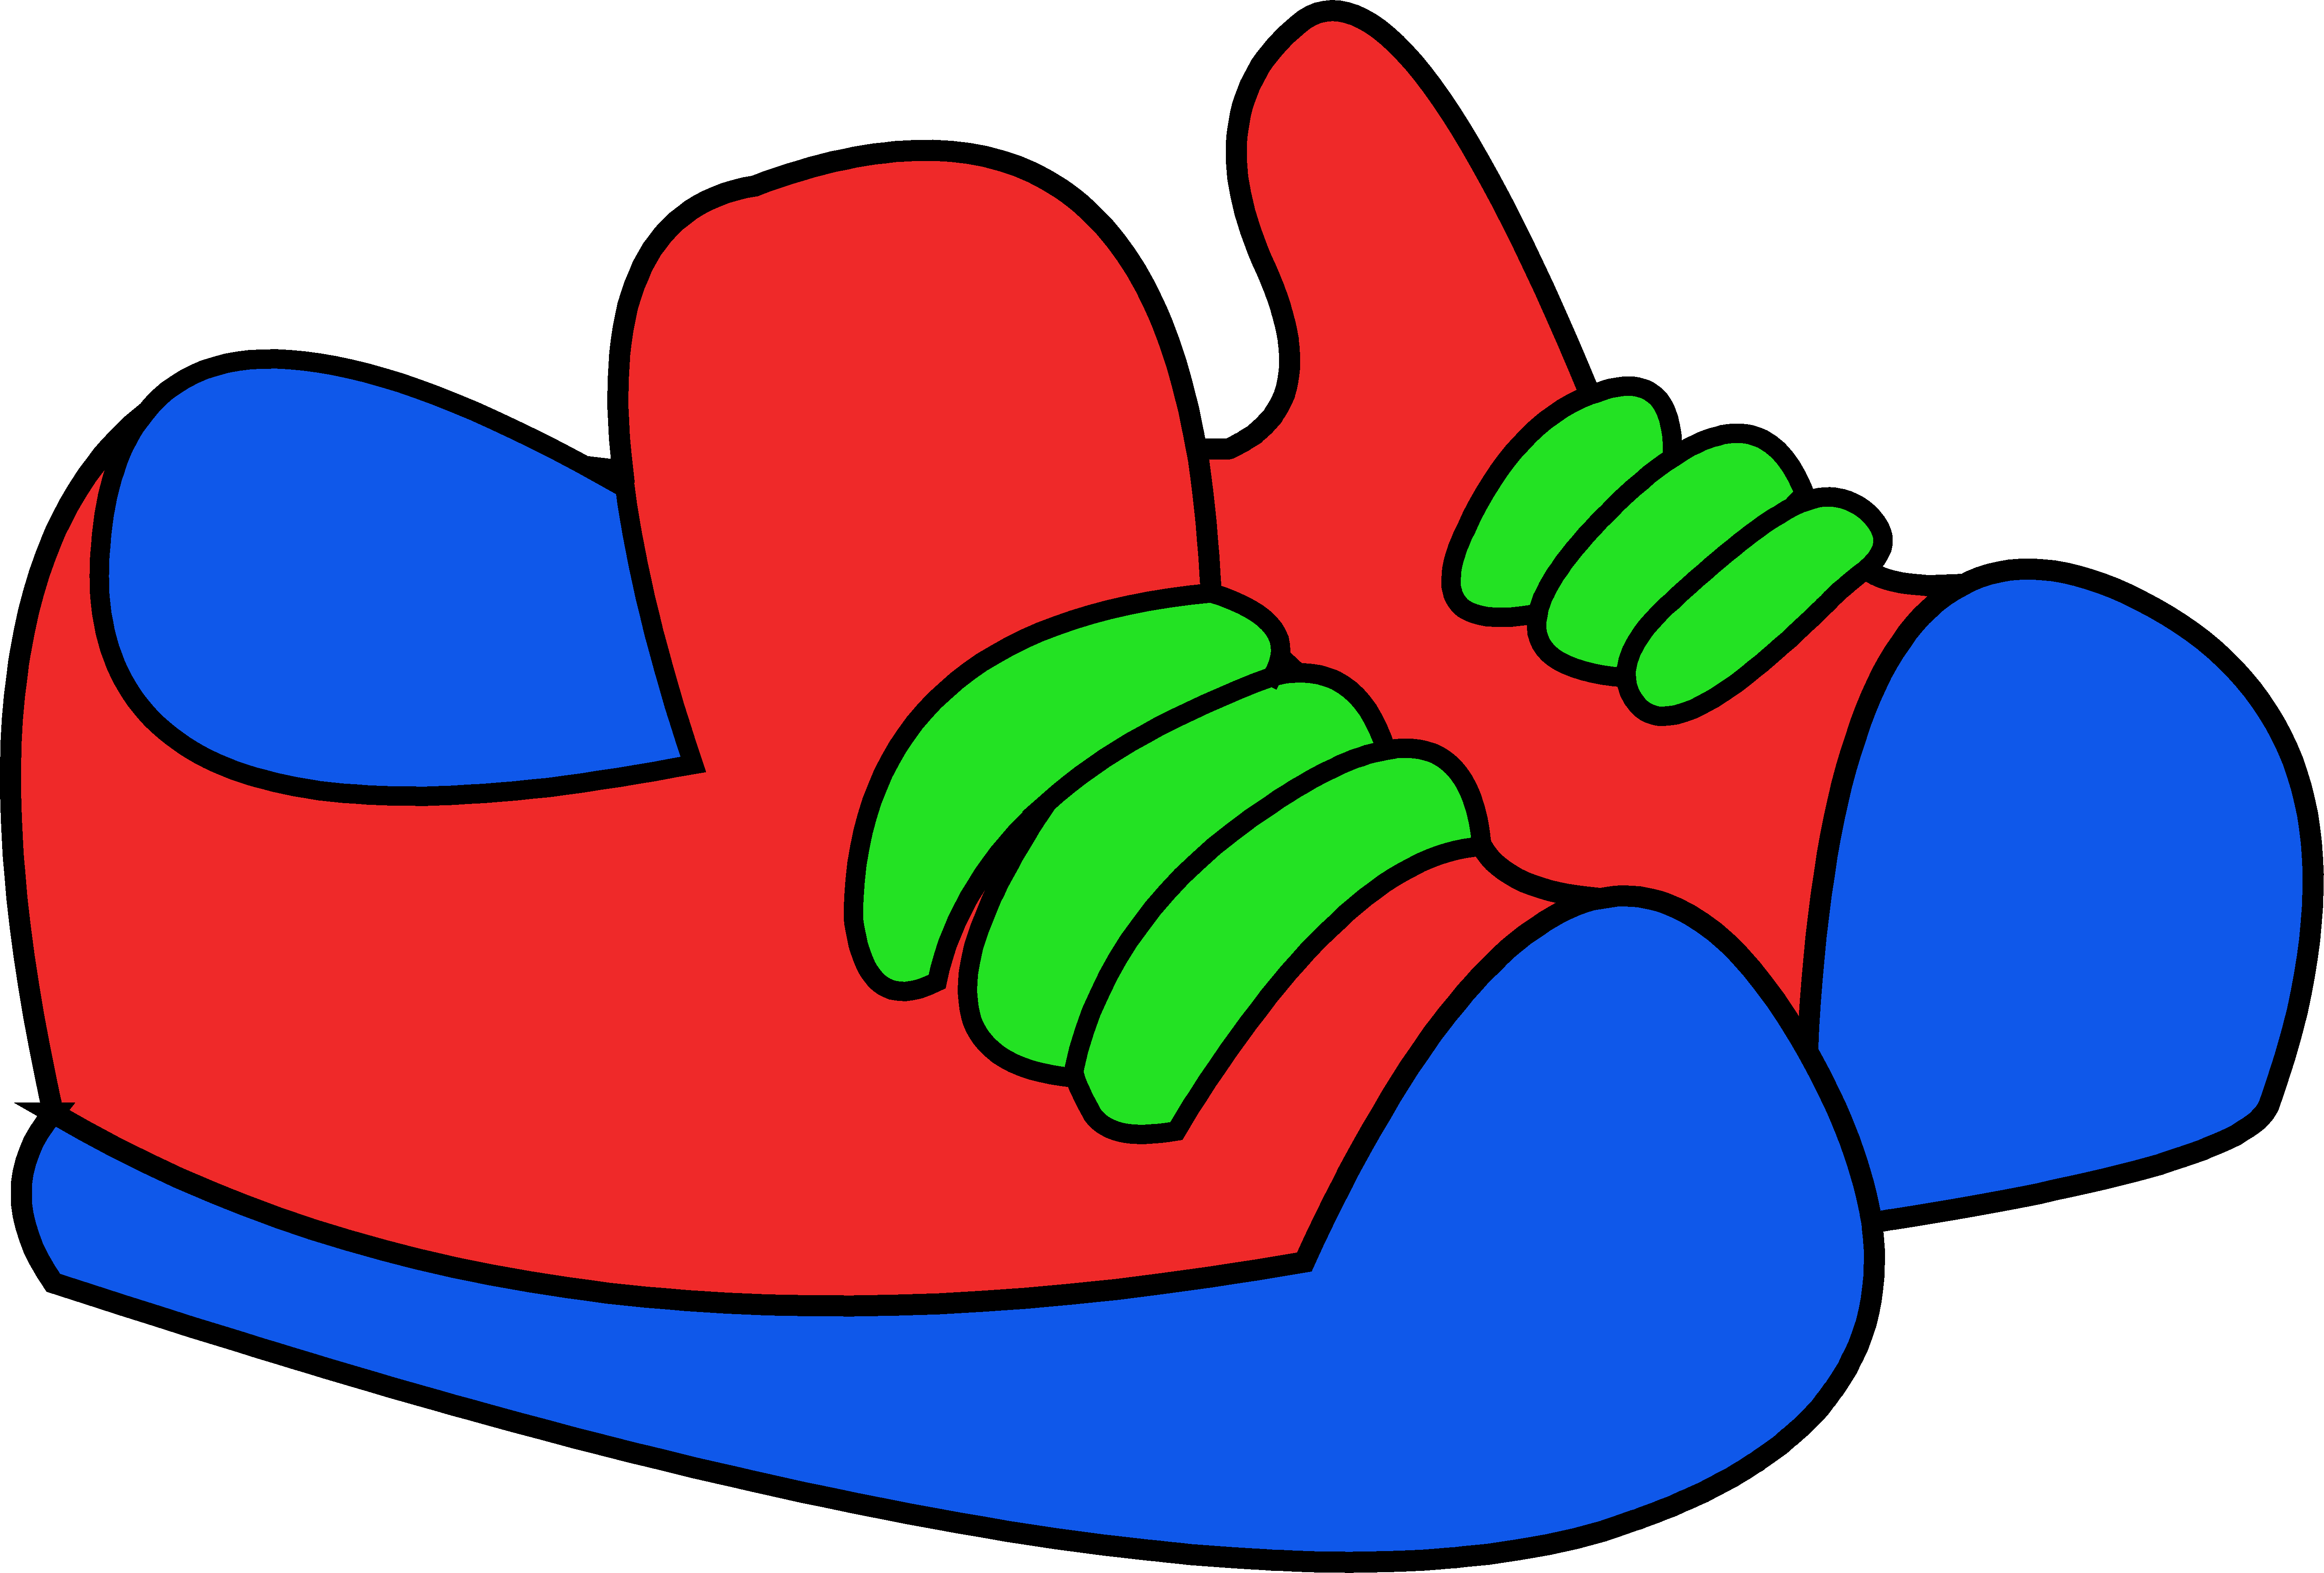 Picture Of A Cartoon Tennis Shoe